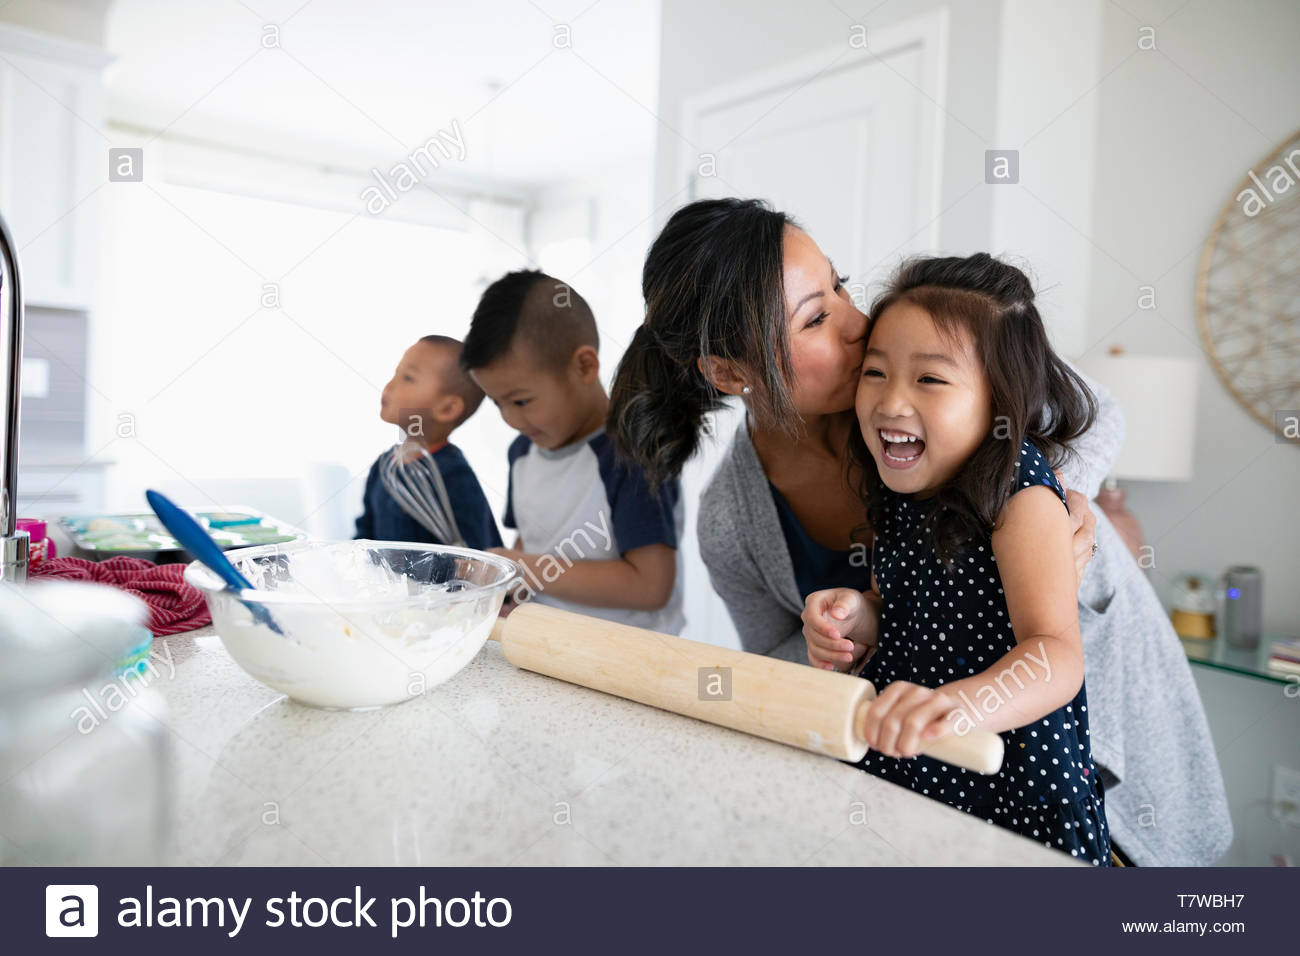 Affectionate mother and children baking in kitchen - Stock Image